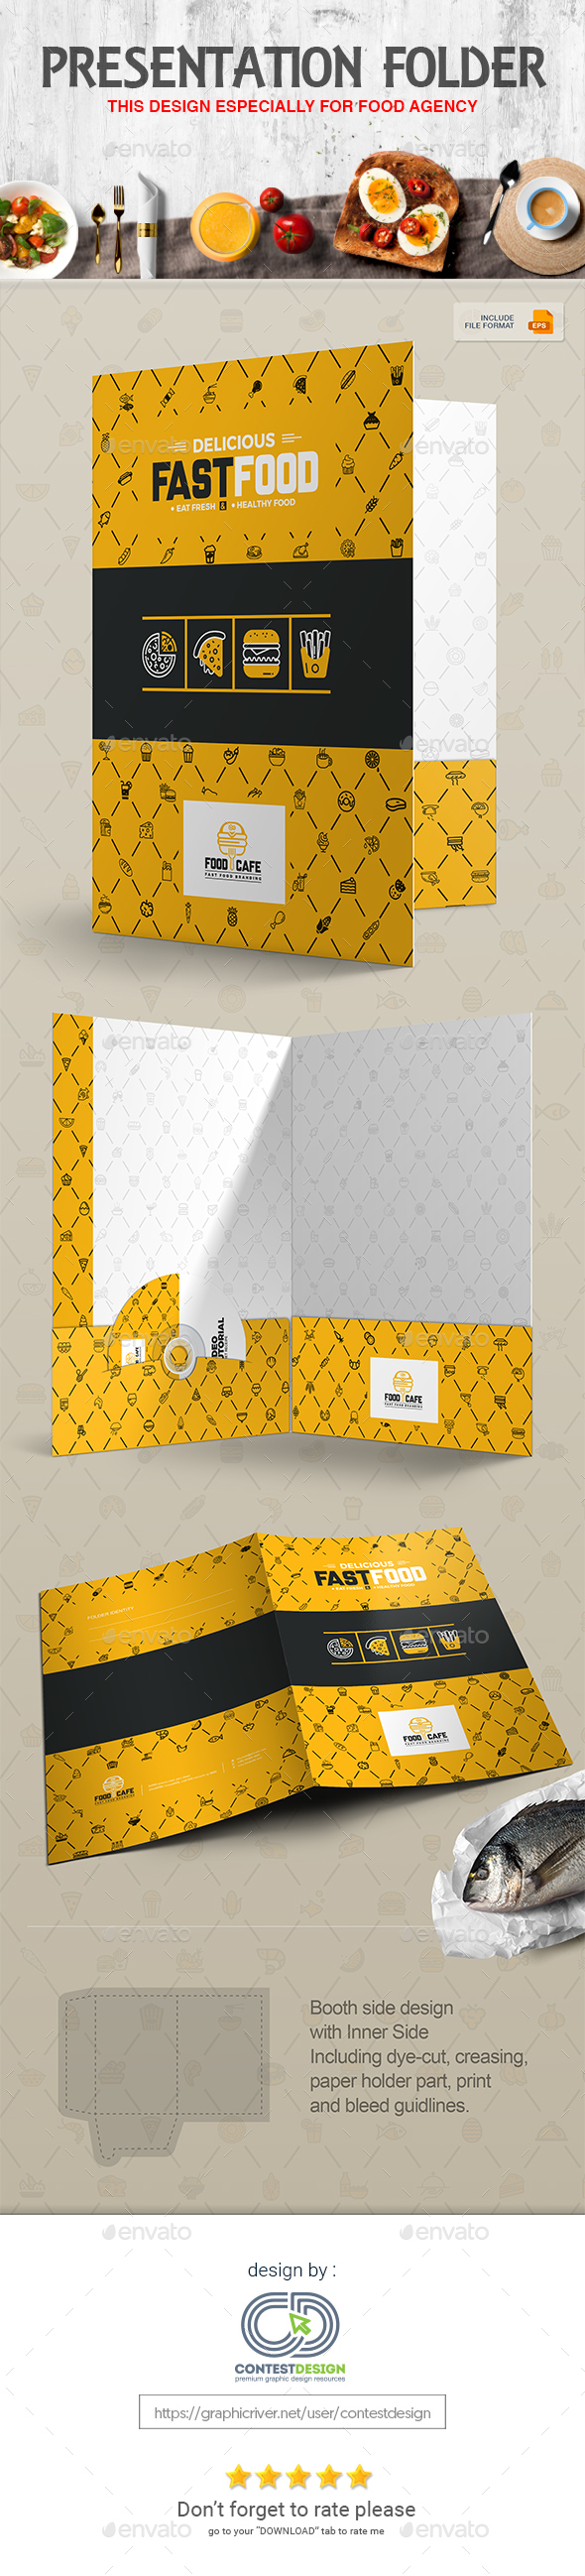 GraphicRiver Presentation Folder Design Template for Fast Food Restaurants Cafe 20333501